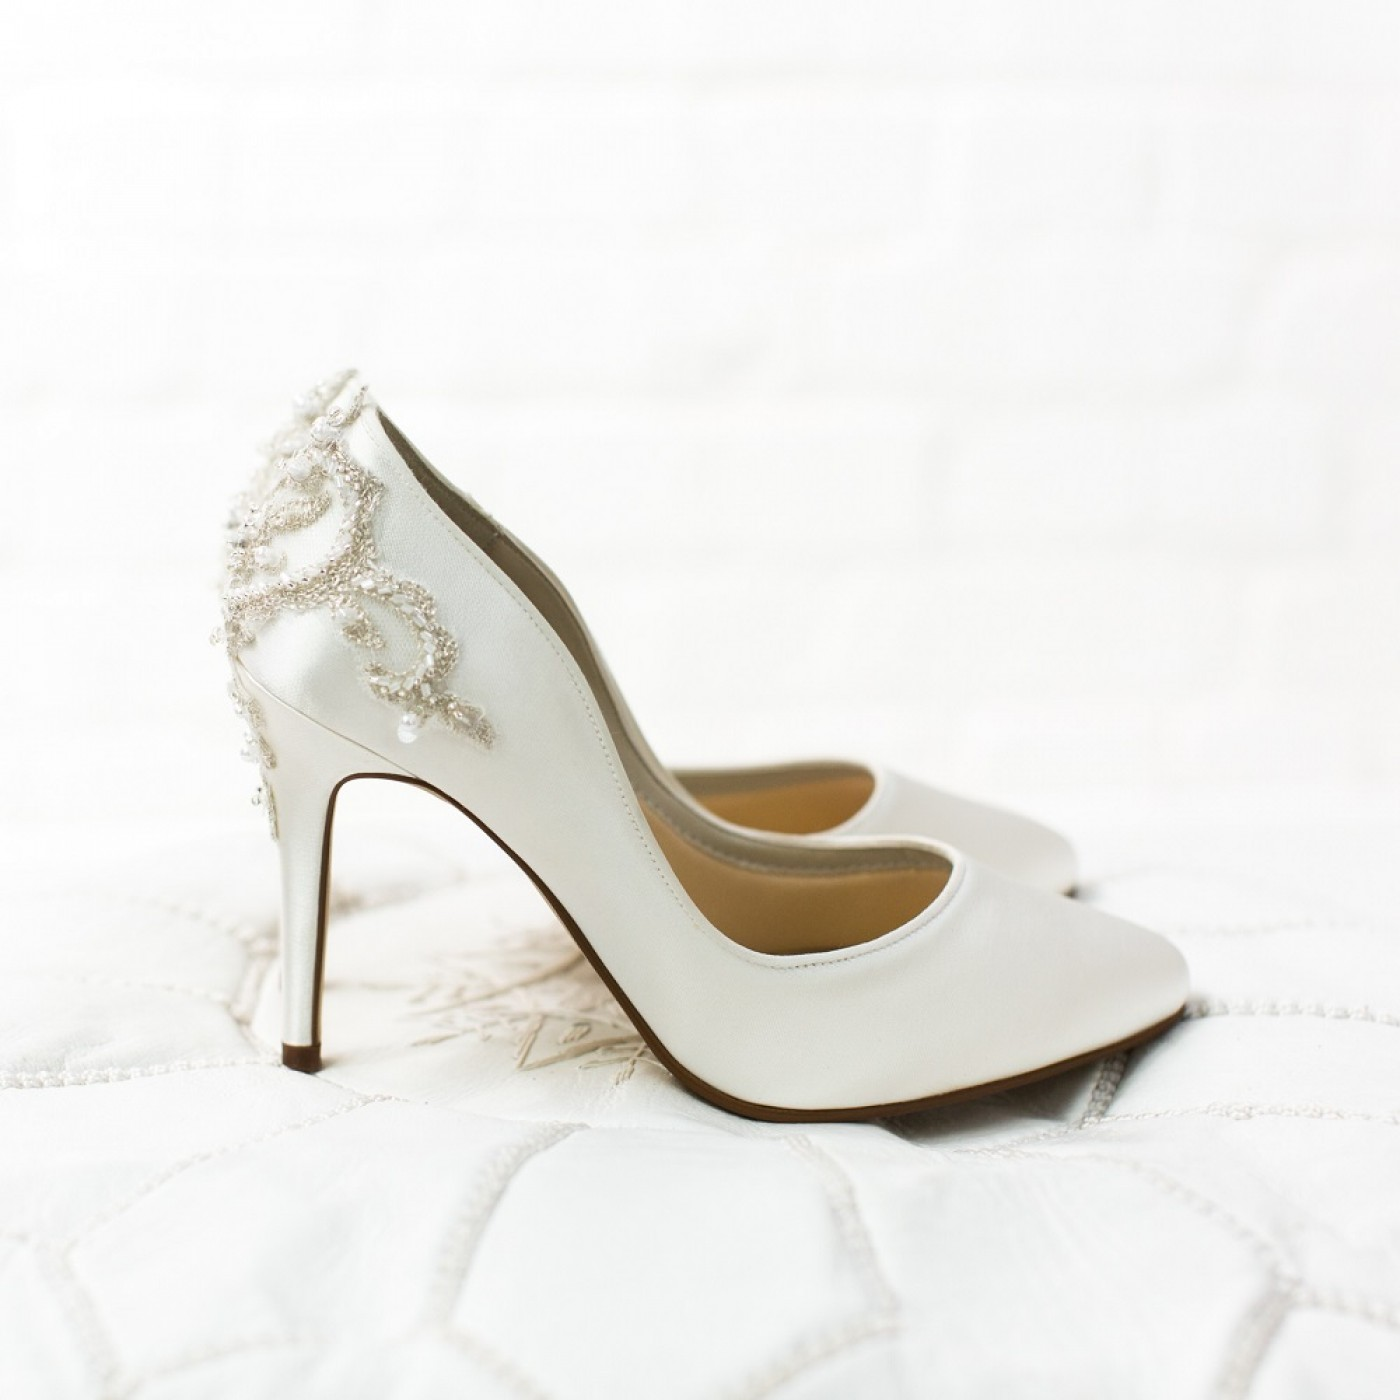 77cb99875663 Rainbow Club Willow - Ivory Satin Embellished Heel Court Shoes ...